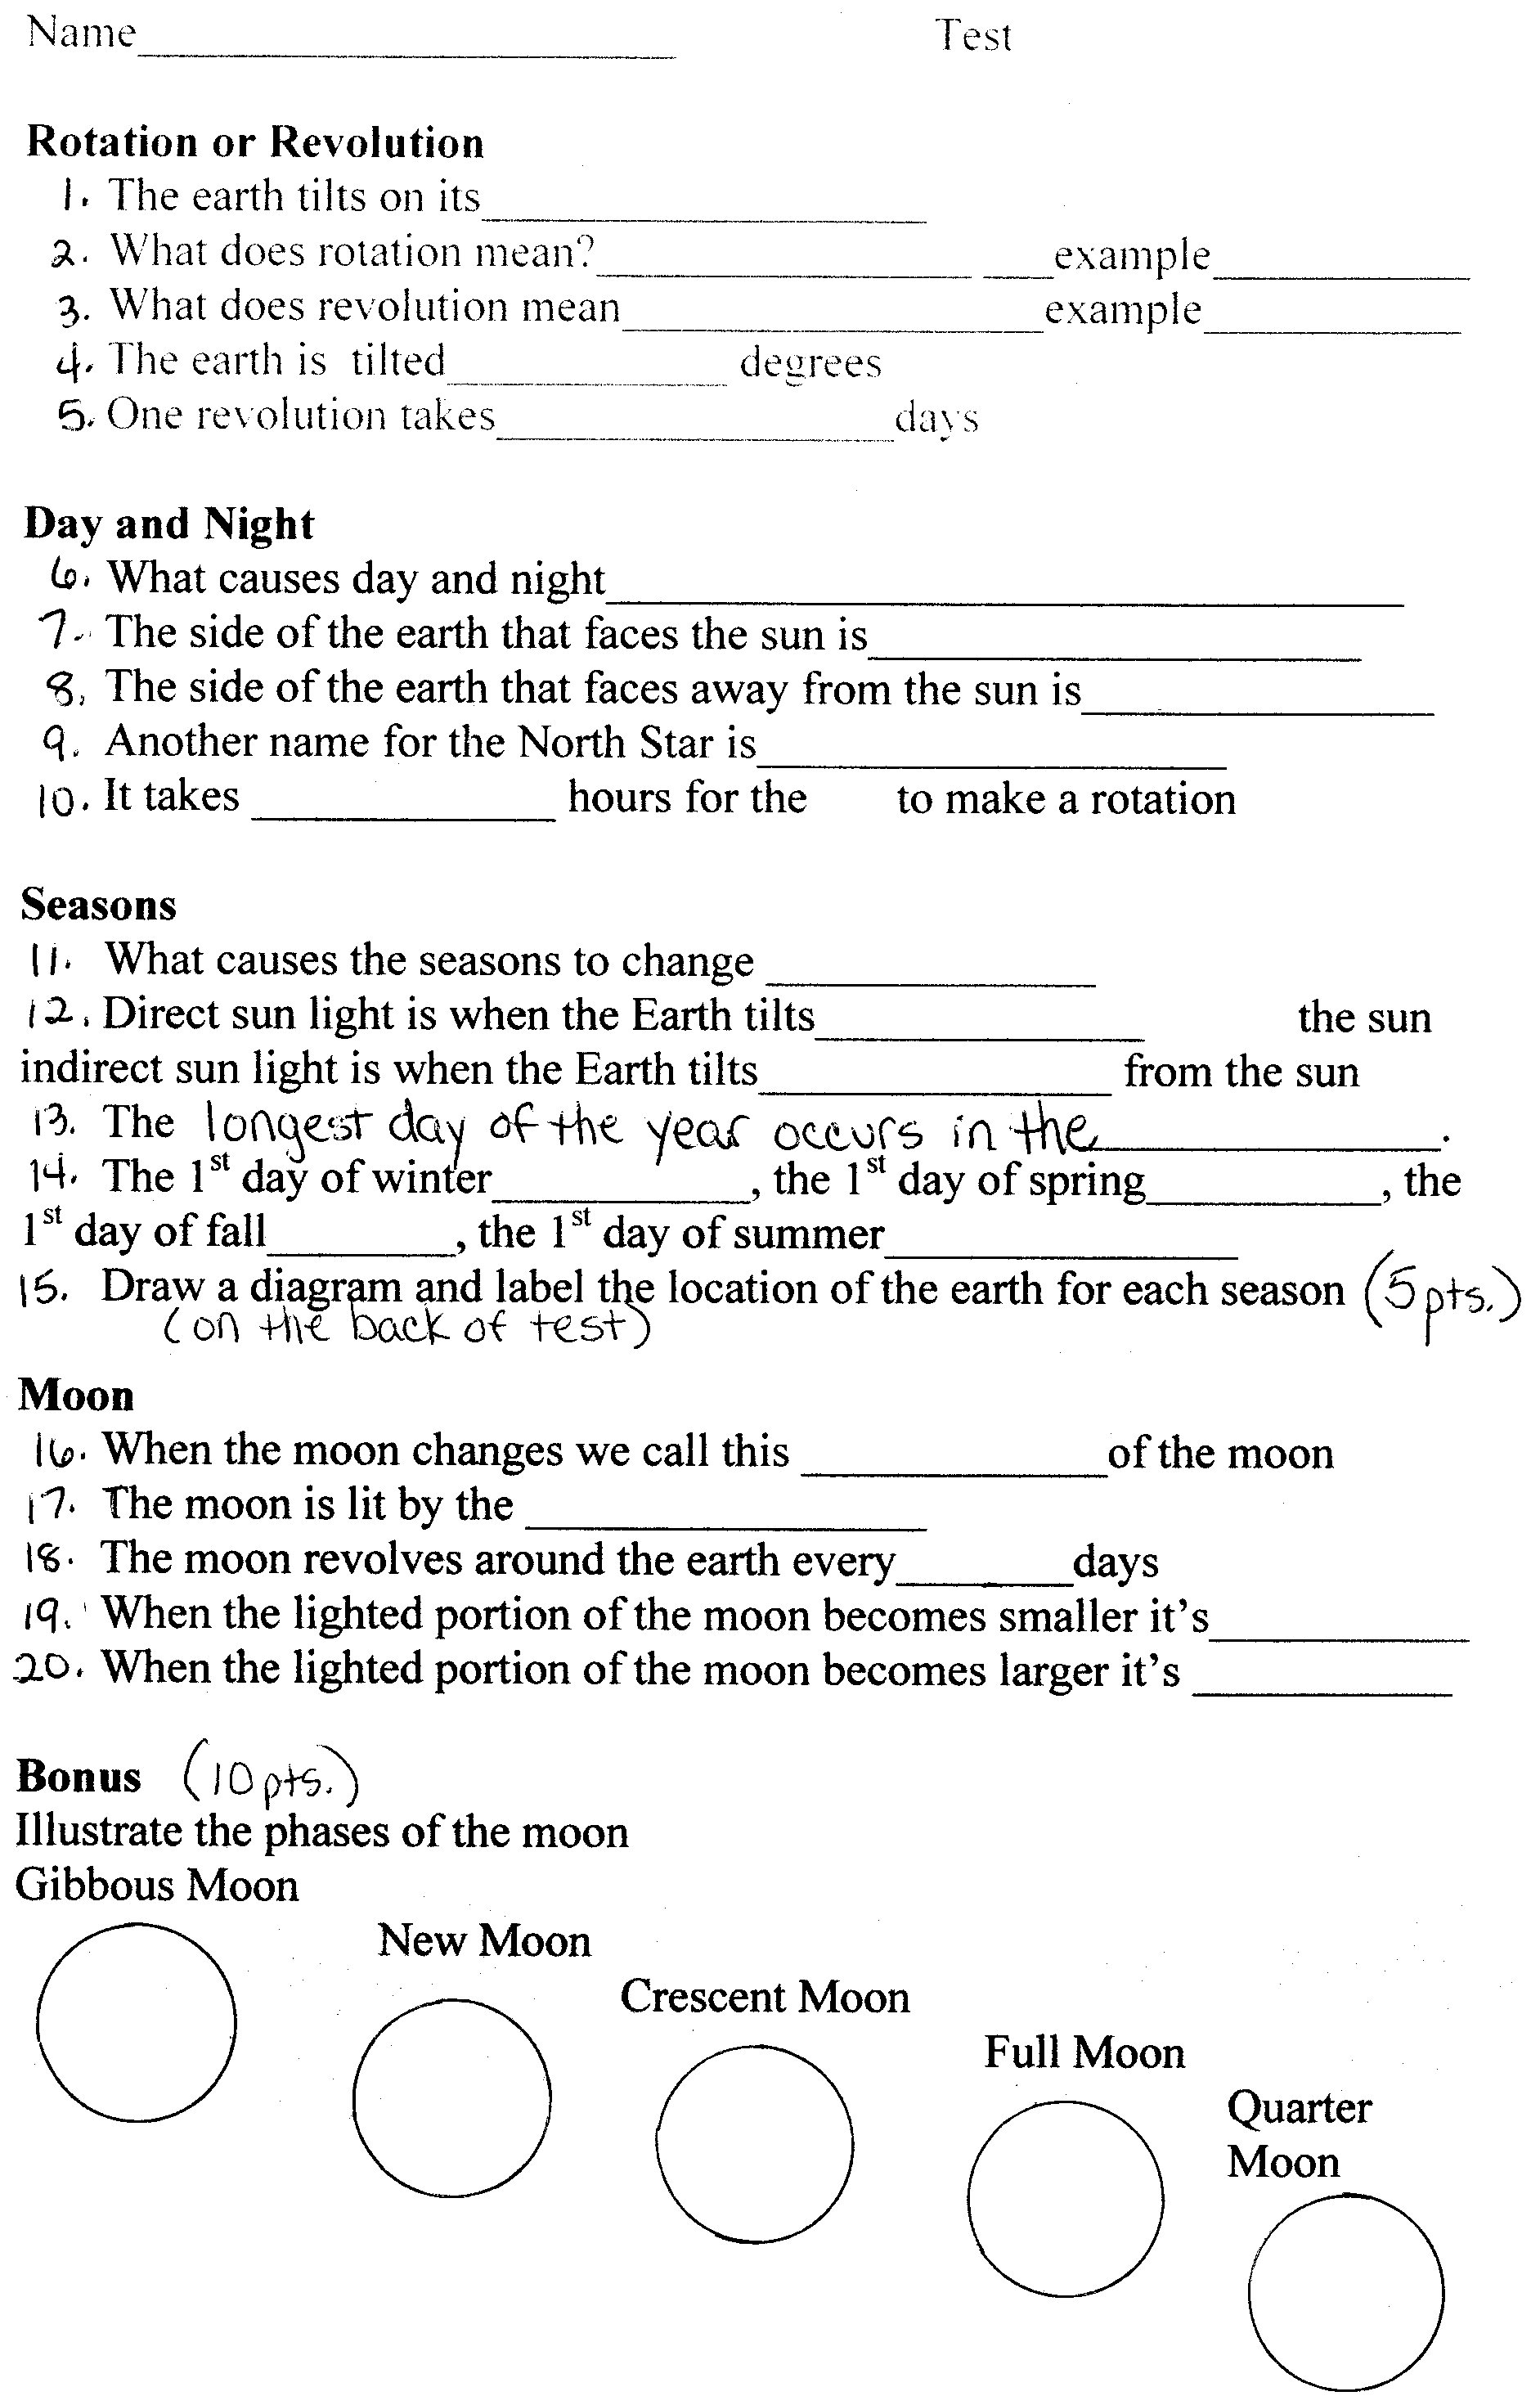 Earth In Space Worksheet Answers - Deployday